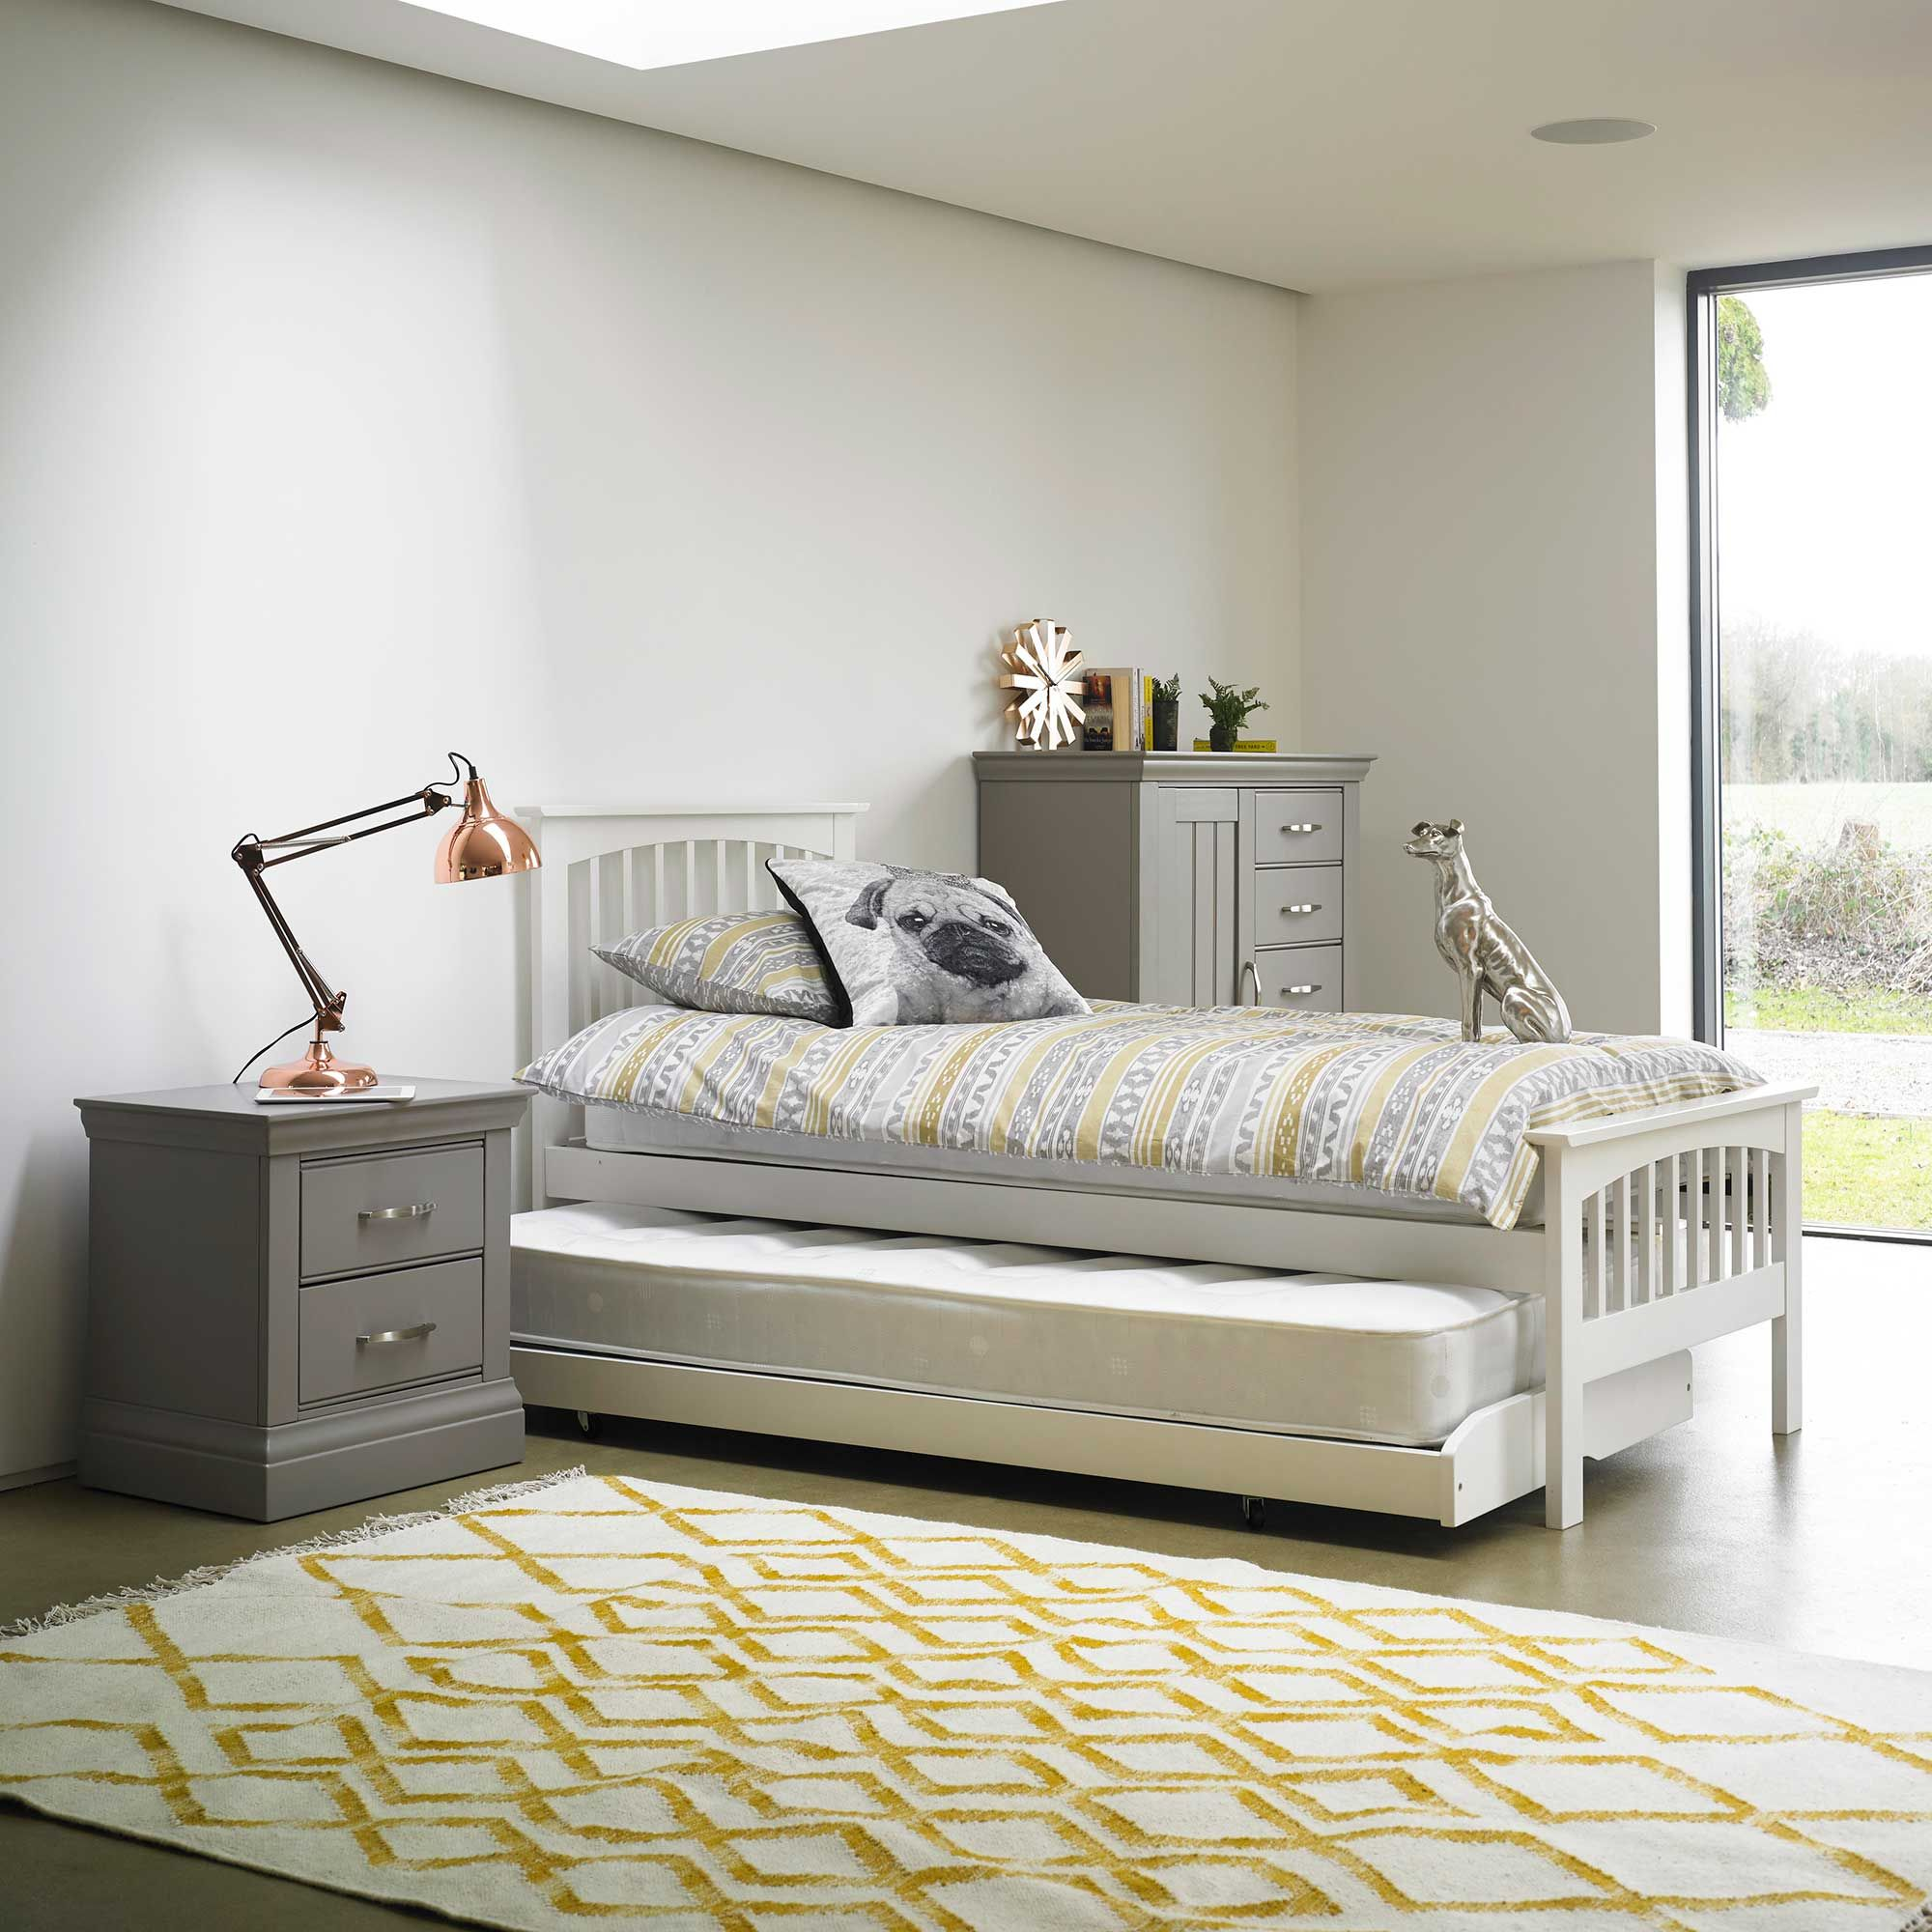 Asher Single Stacker Guest Bed White available